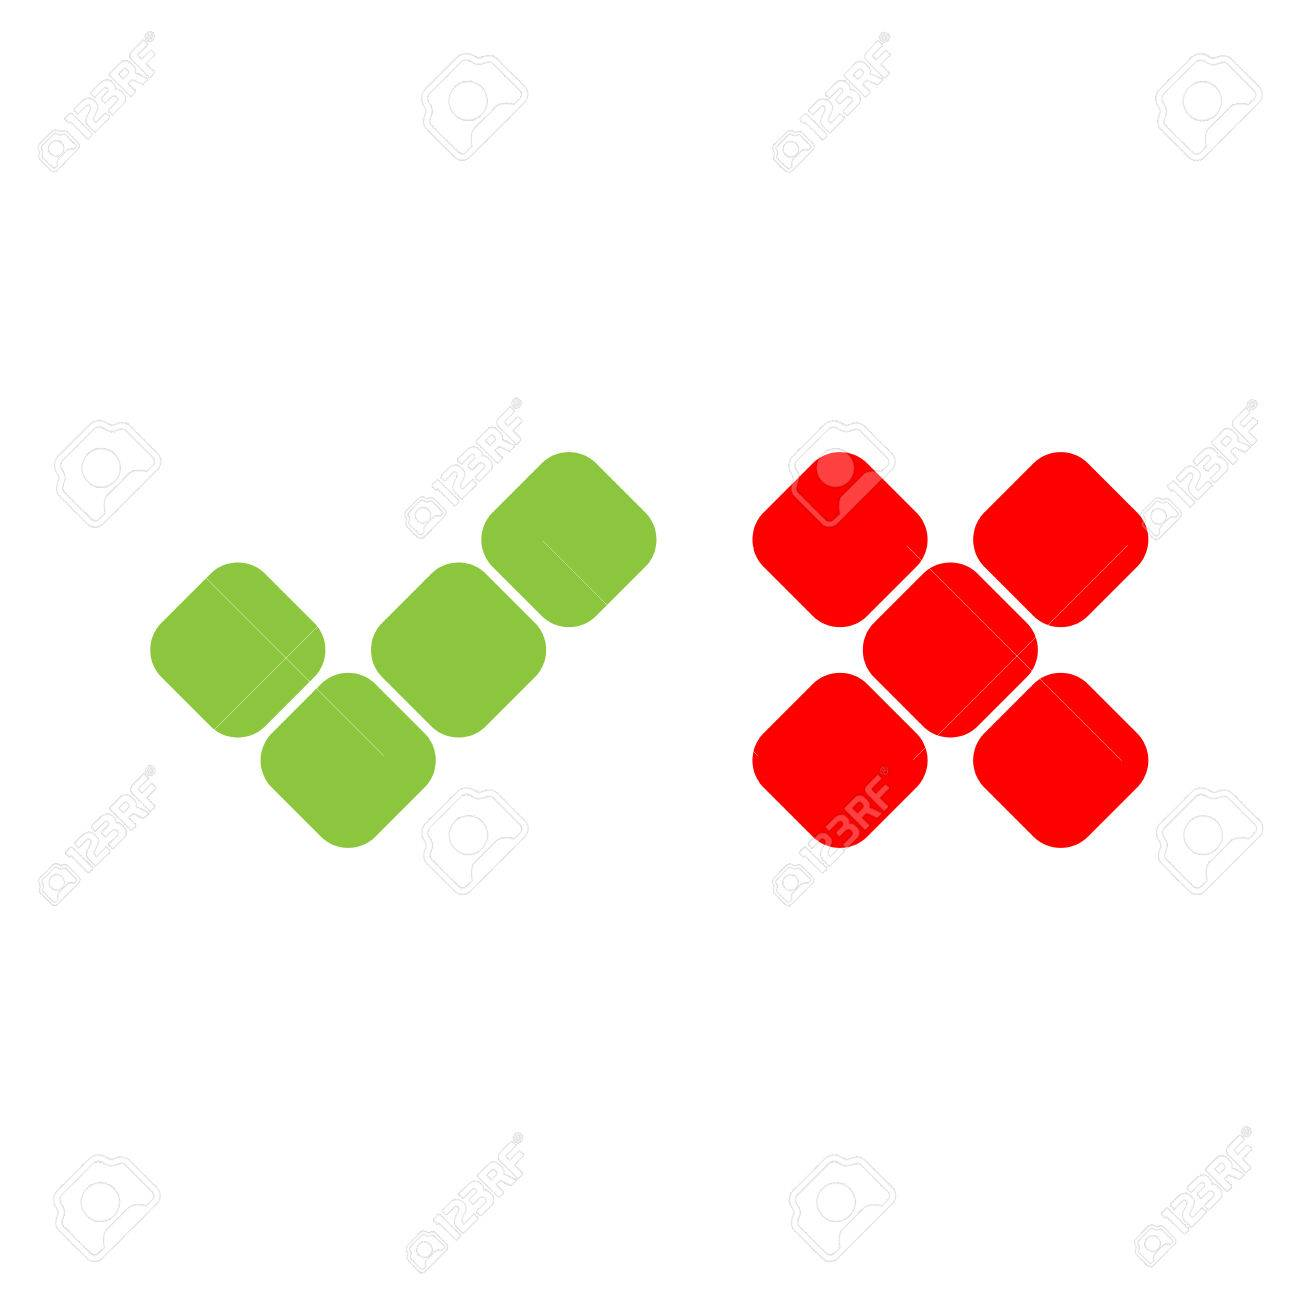 1300x1300 Check Mark Icons Of Squares. Green Tick And Red Cross. Flat Vector